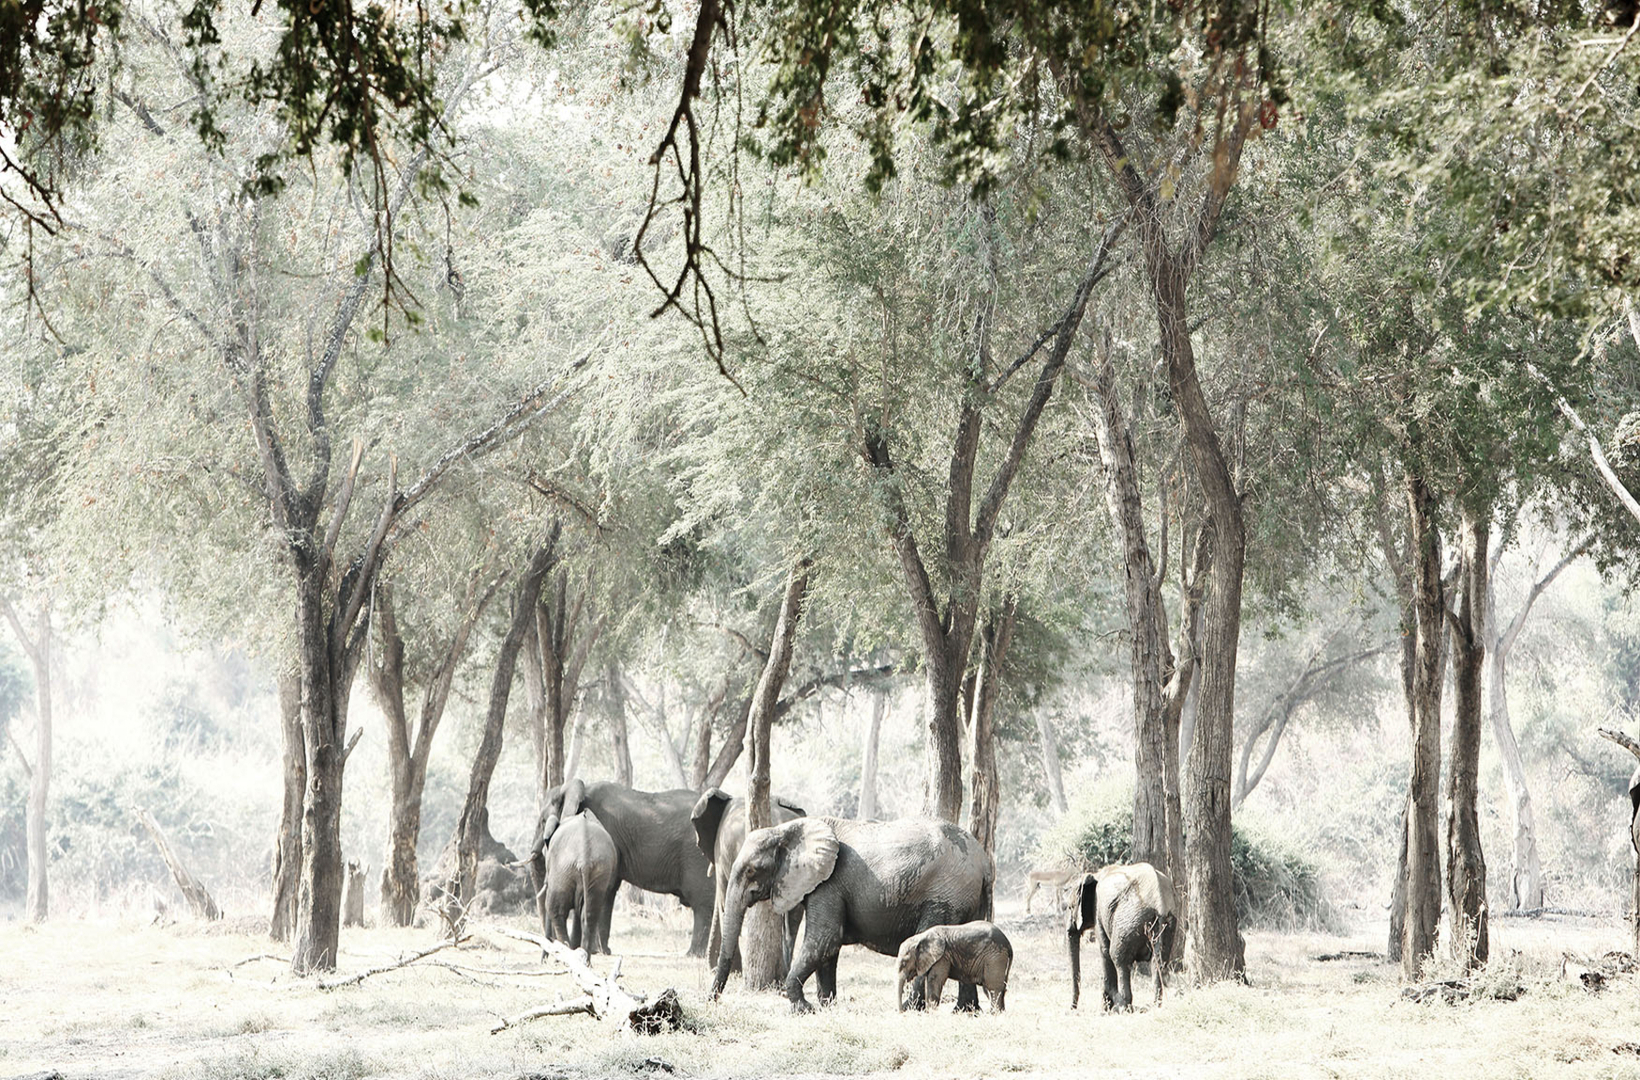 A breeding herd of African elephants while away the heat of midday amongst riverine glades of Mana Pools National Park in Zimbabwe